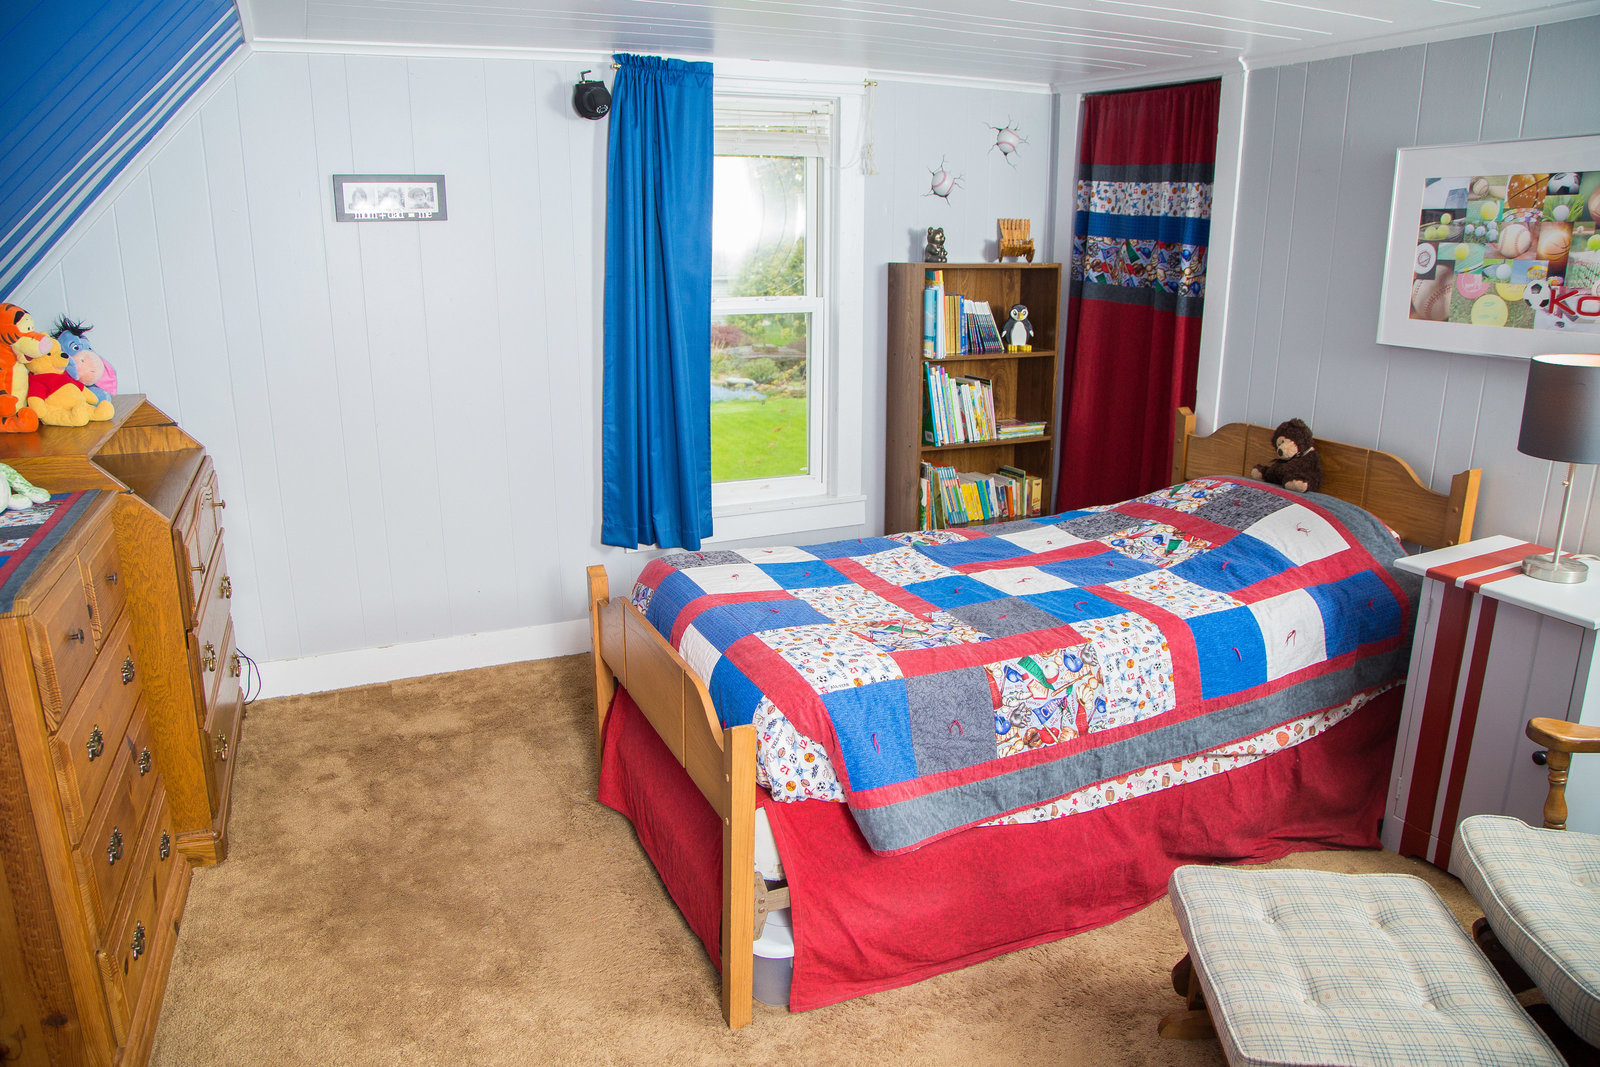 Real Estate Kids Bedroom